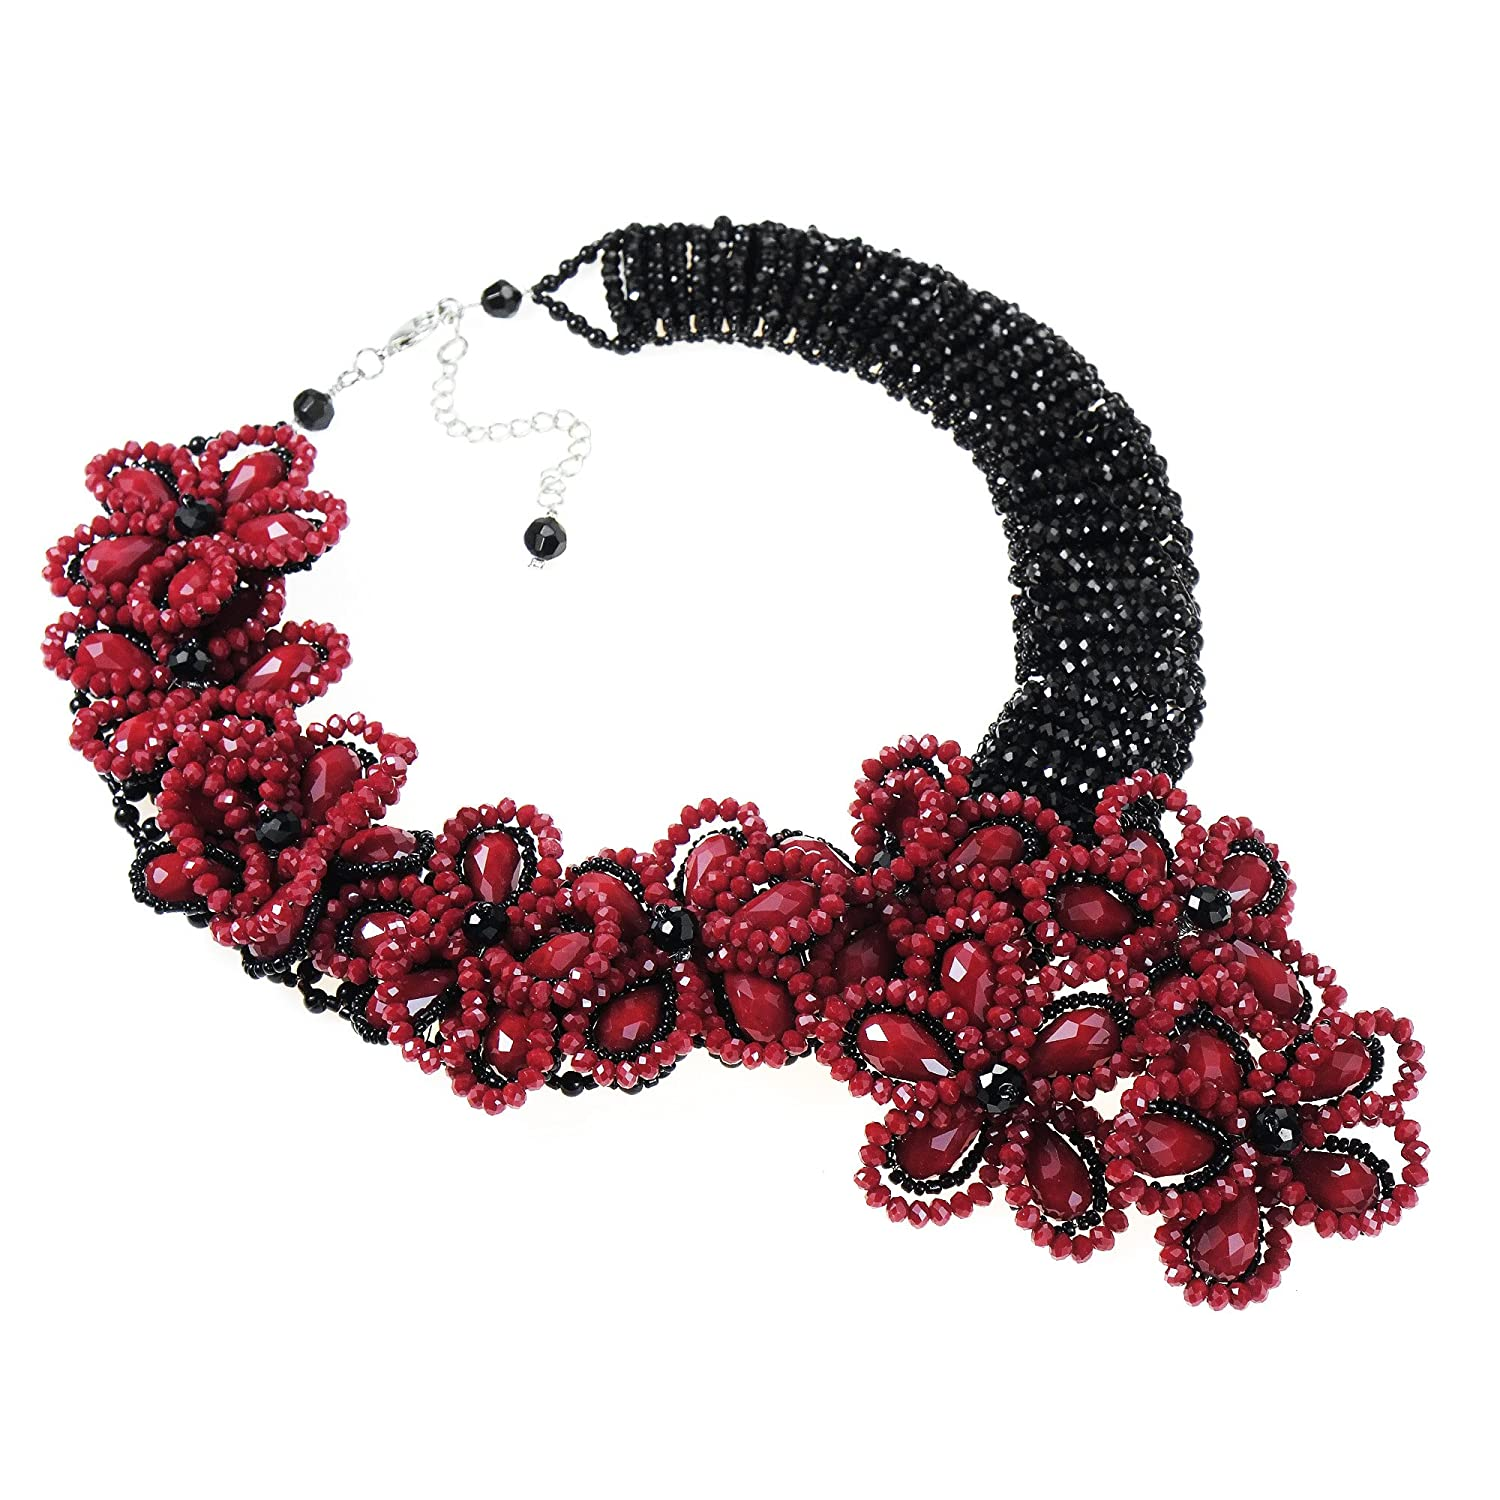 AeraVida Infinite Blossoms Black-Red Fashion Crystals and Fashion Beads on Base Metal Jewelry Wire Statement Necklace